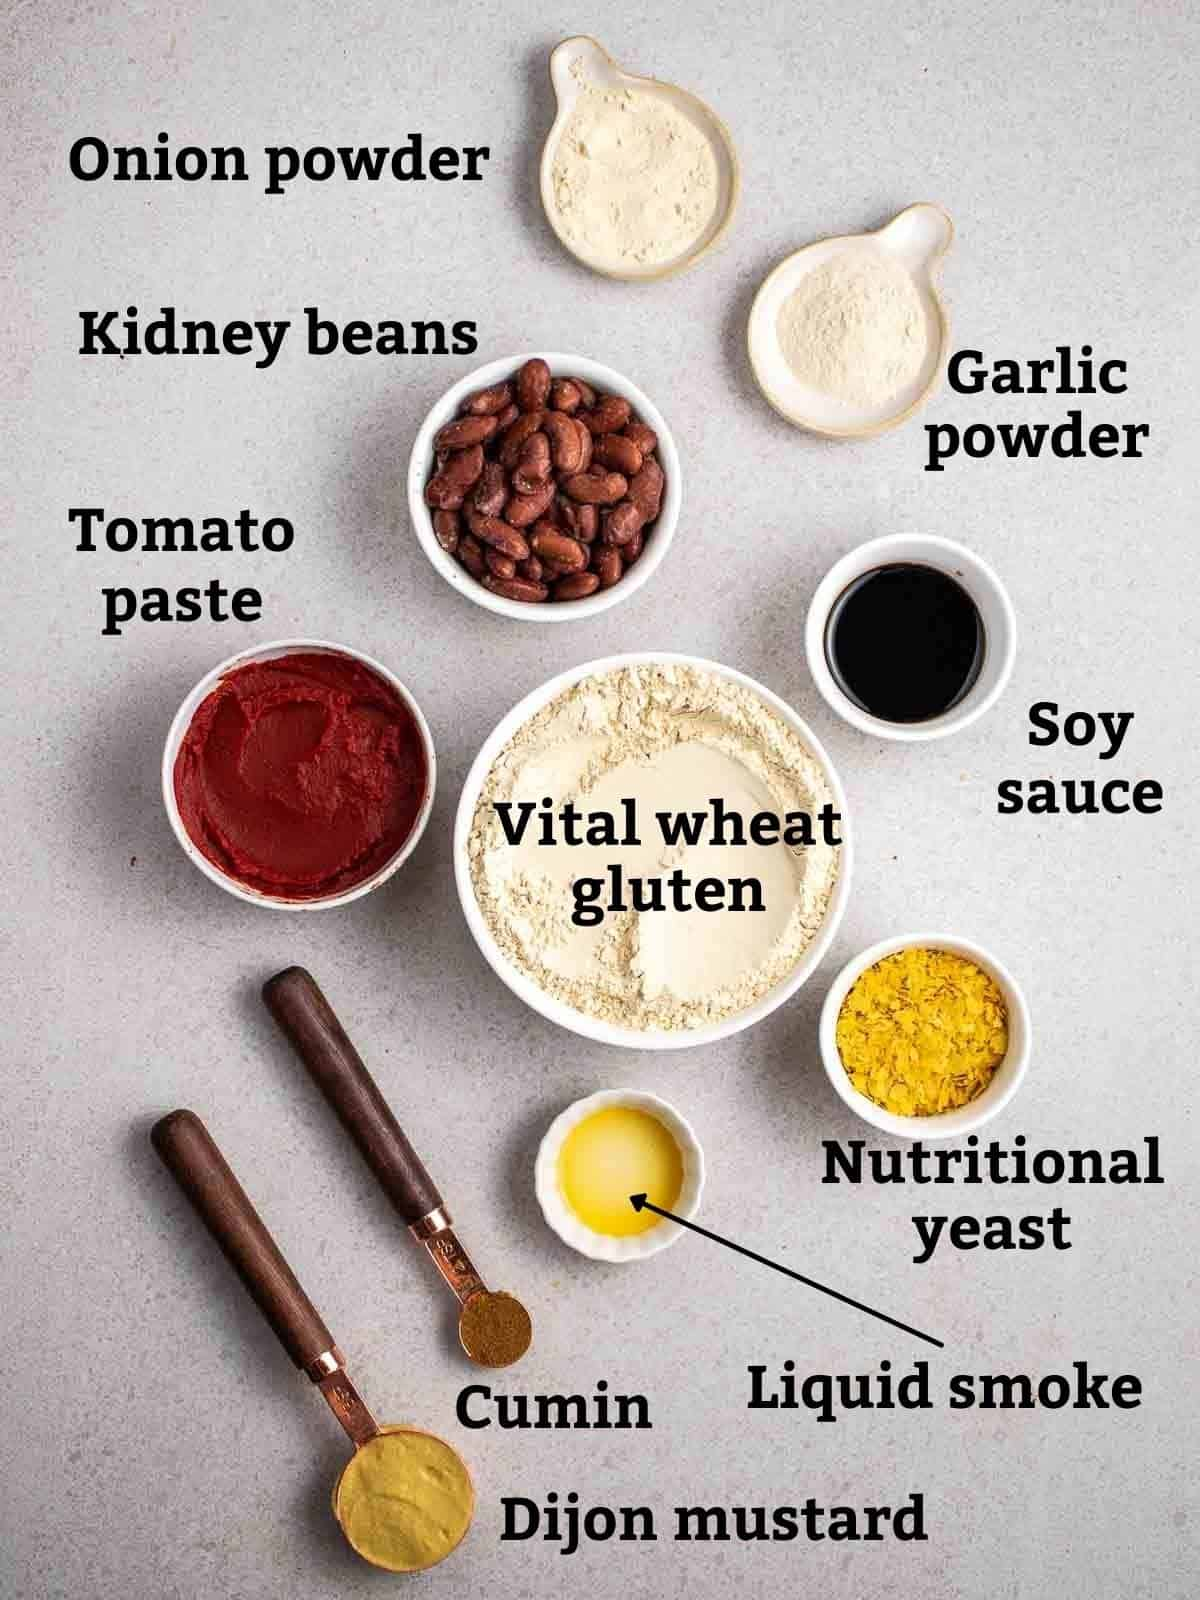 Ingredients needed like vital wheat gluten, beans, tomato paste and other seasonings in bowls on a grey background.